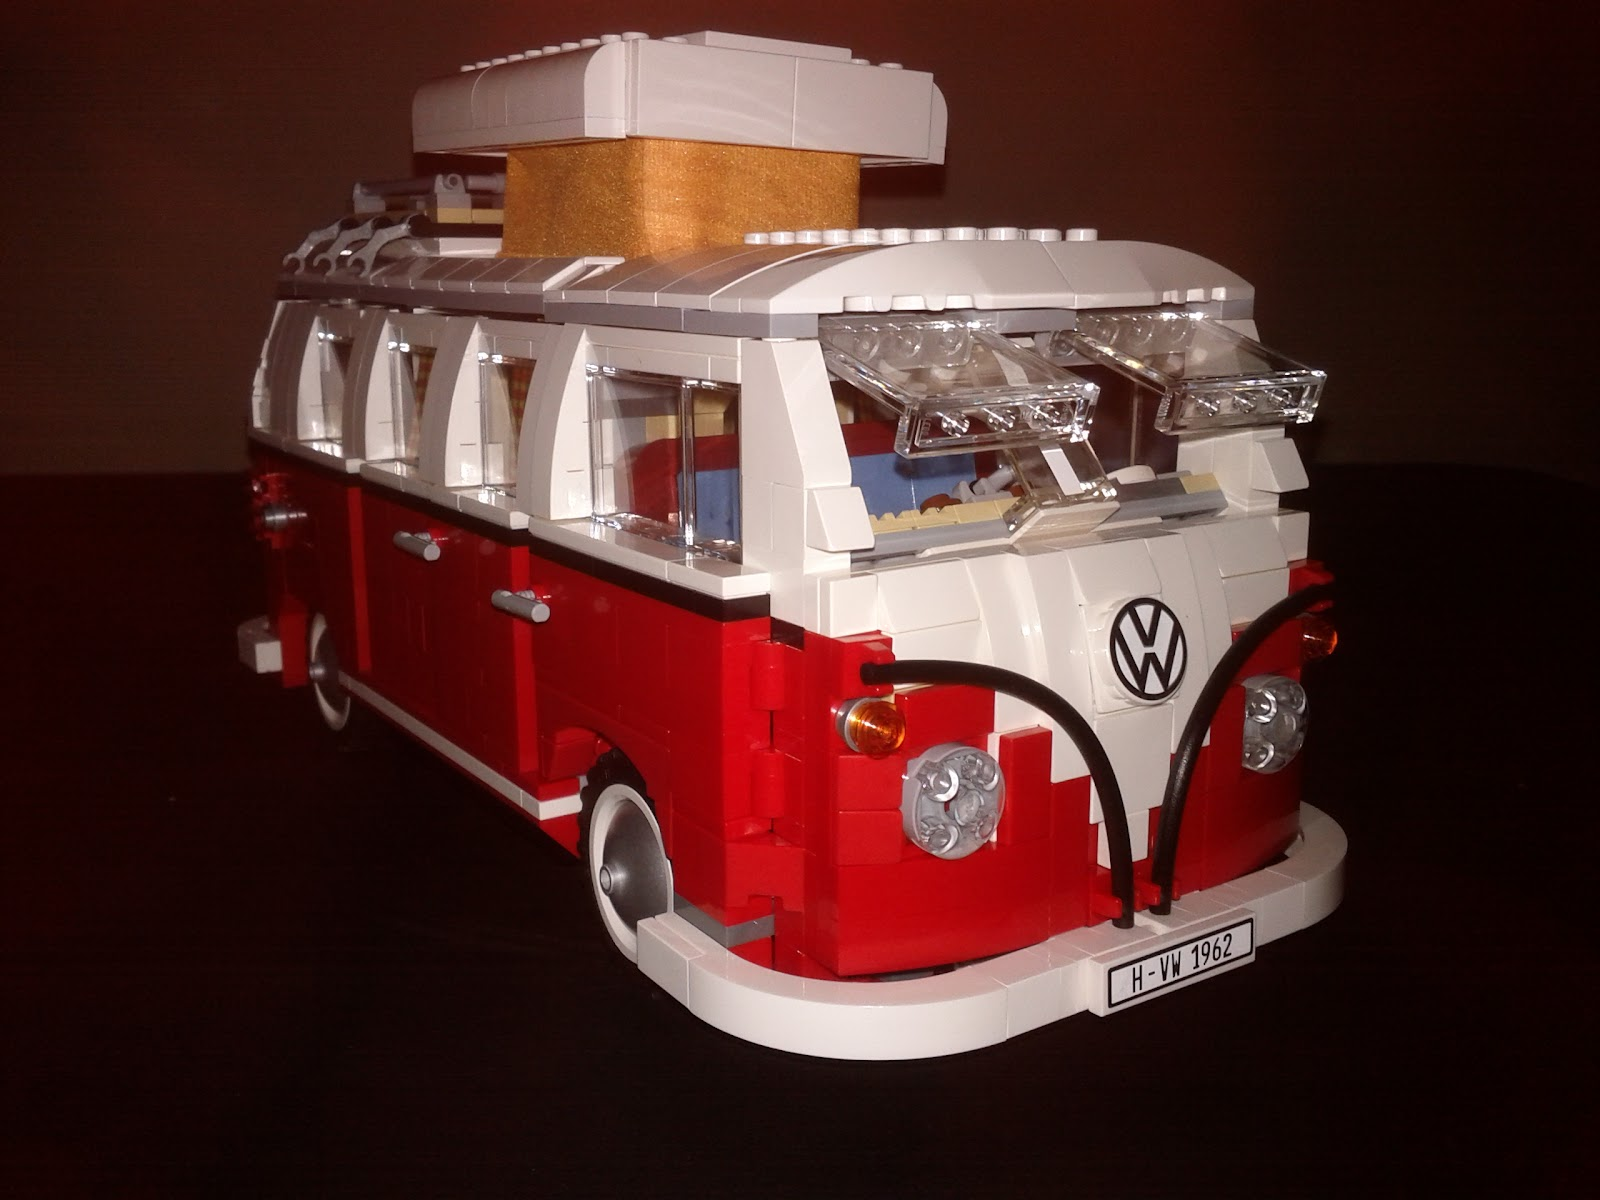 van vw of lego kind kit news volkswagen bus new camper our from magic is